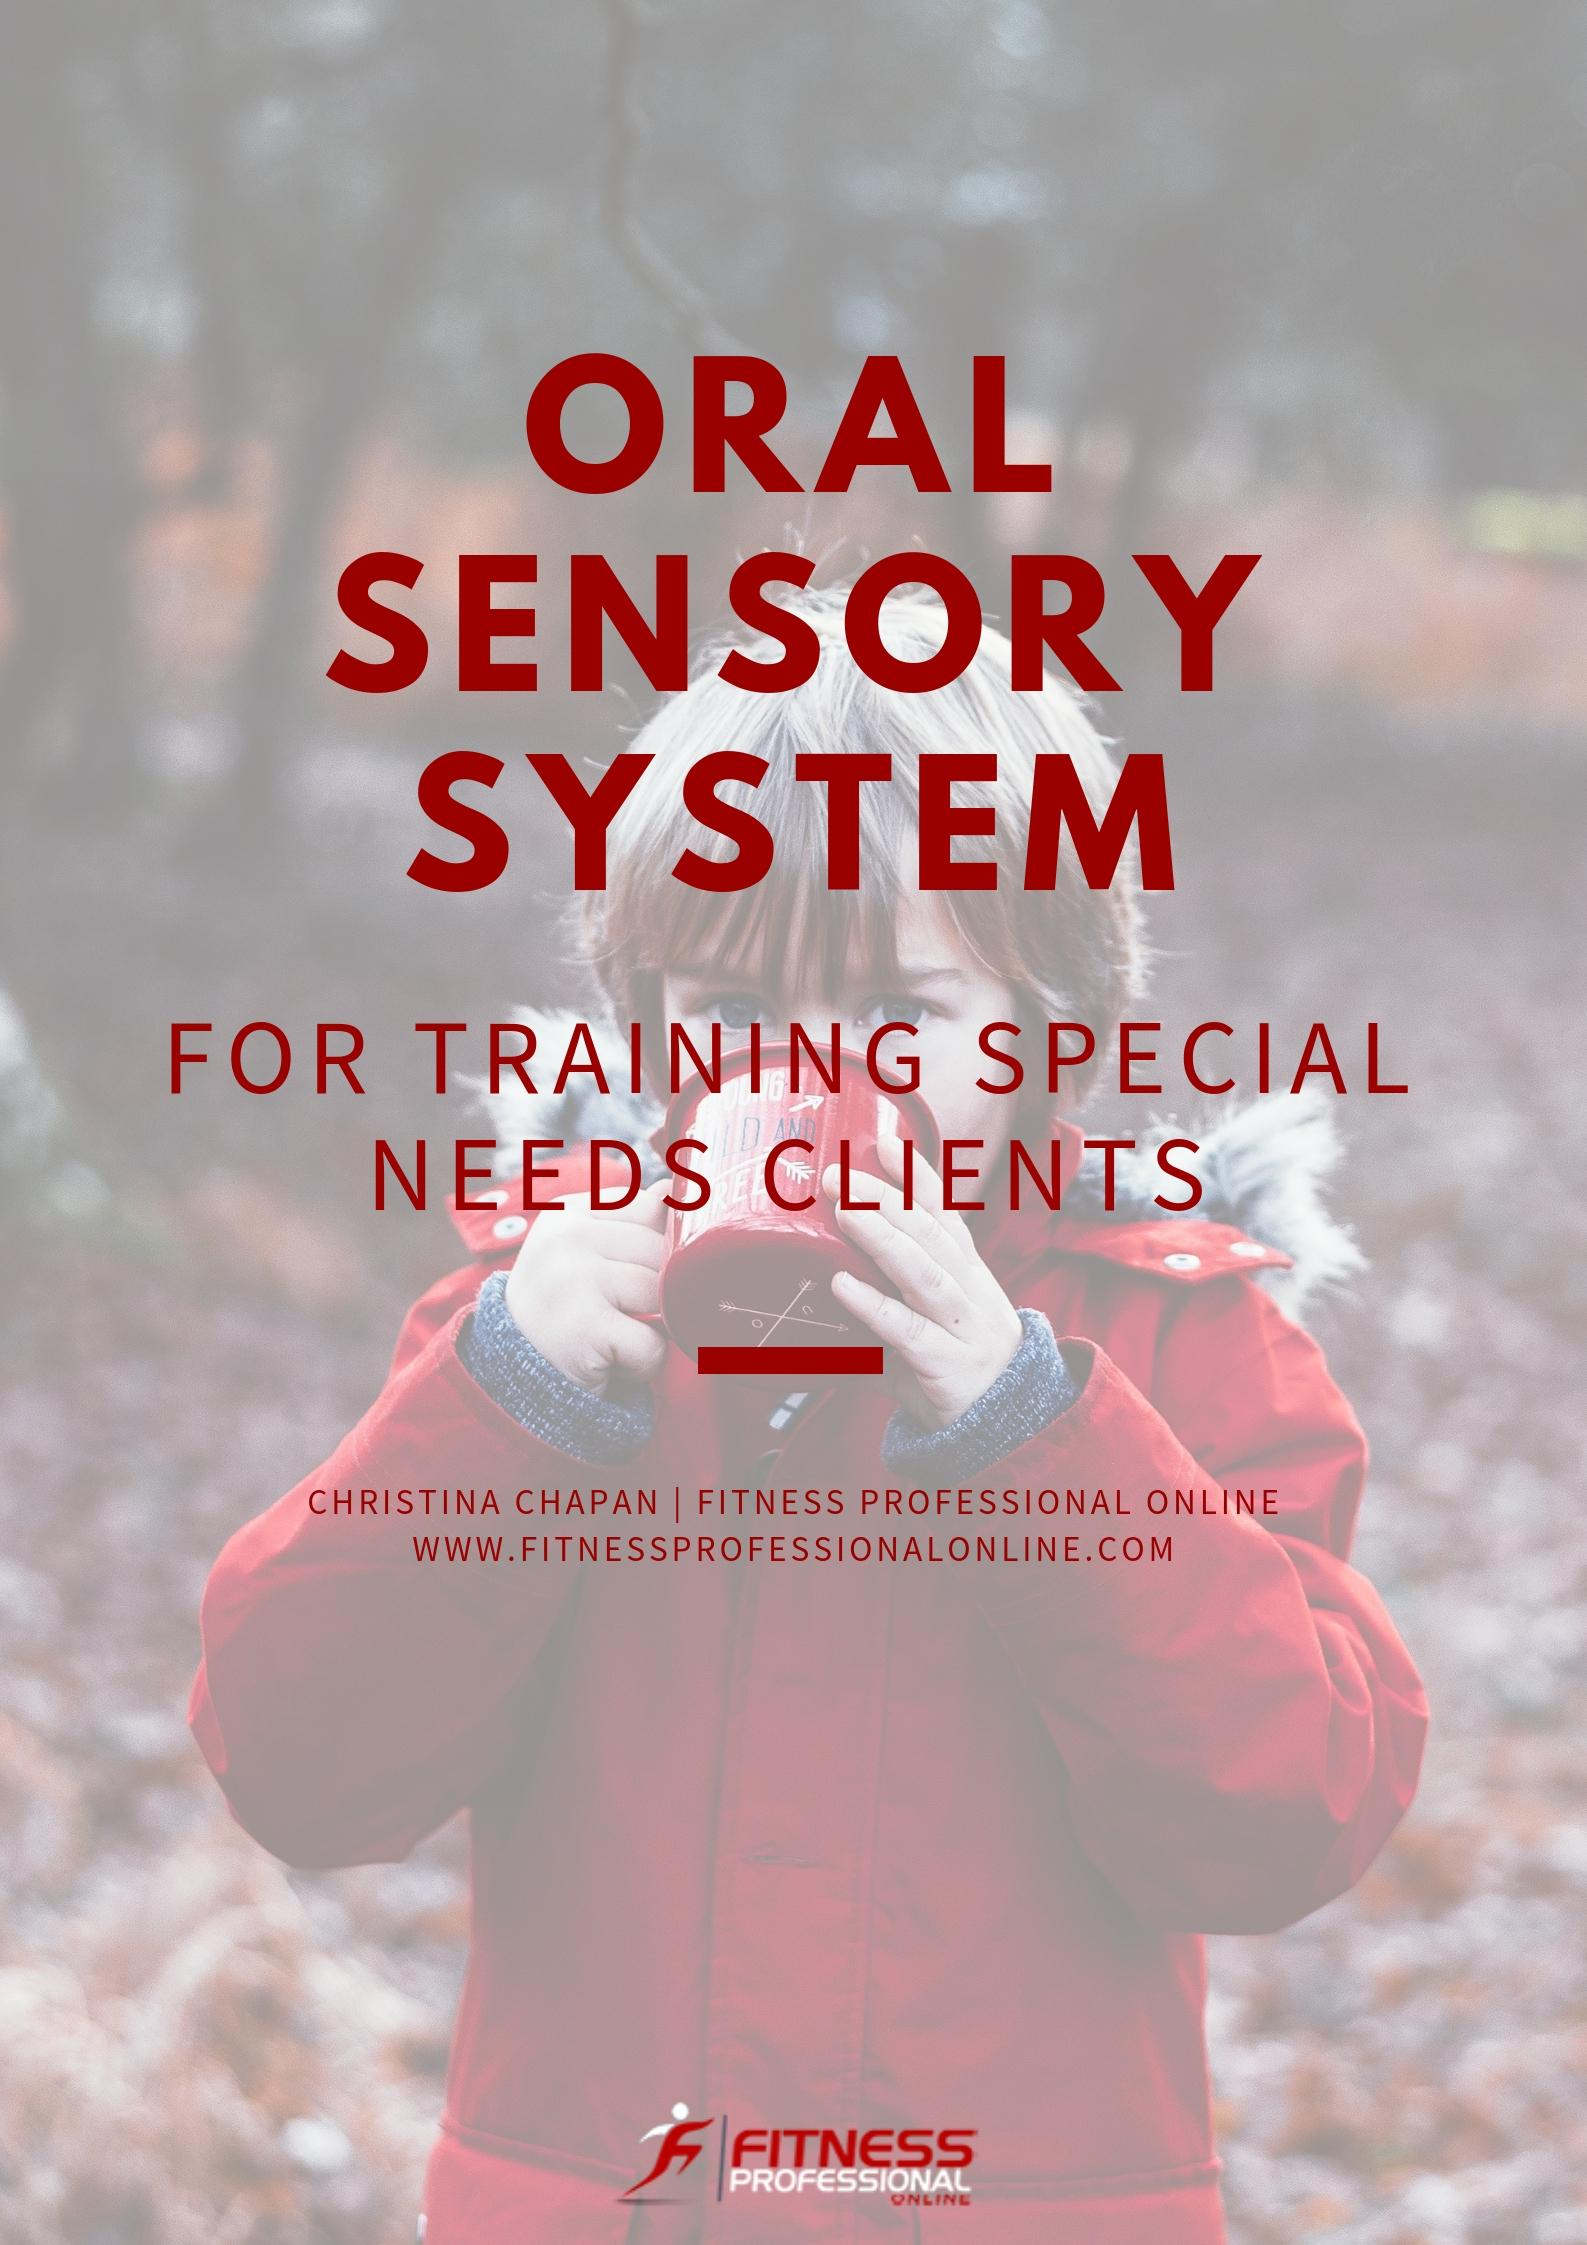 Many children and adults suffer from the oral sensory disorder.